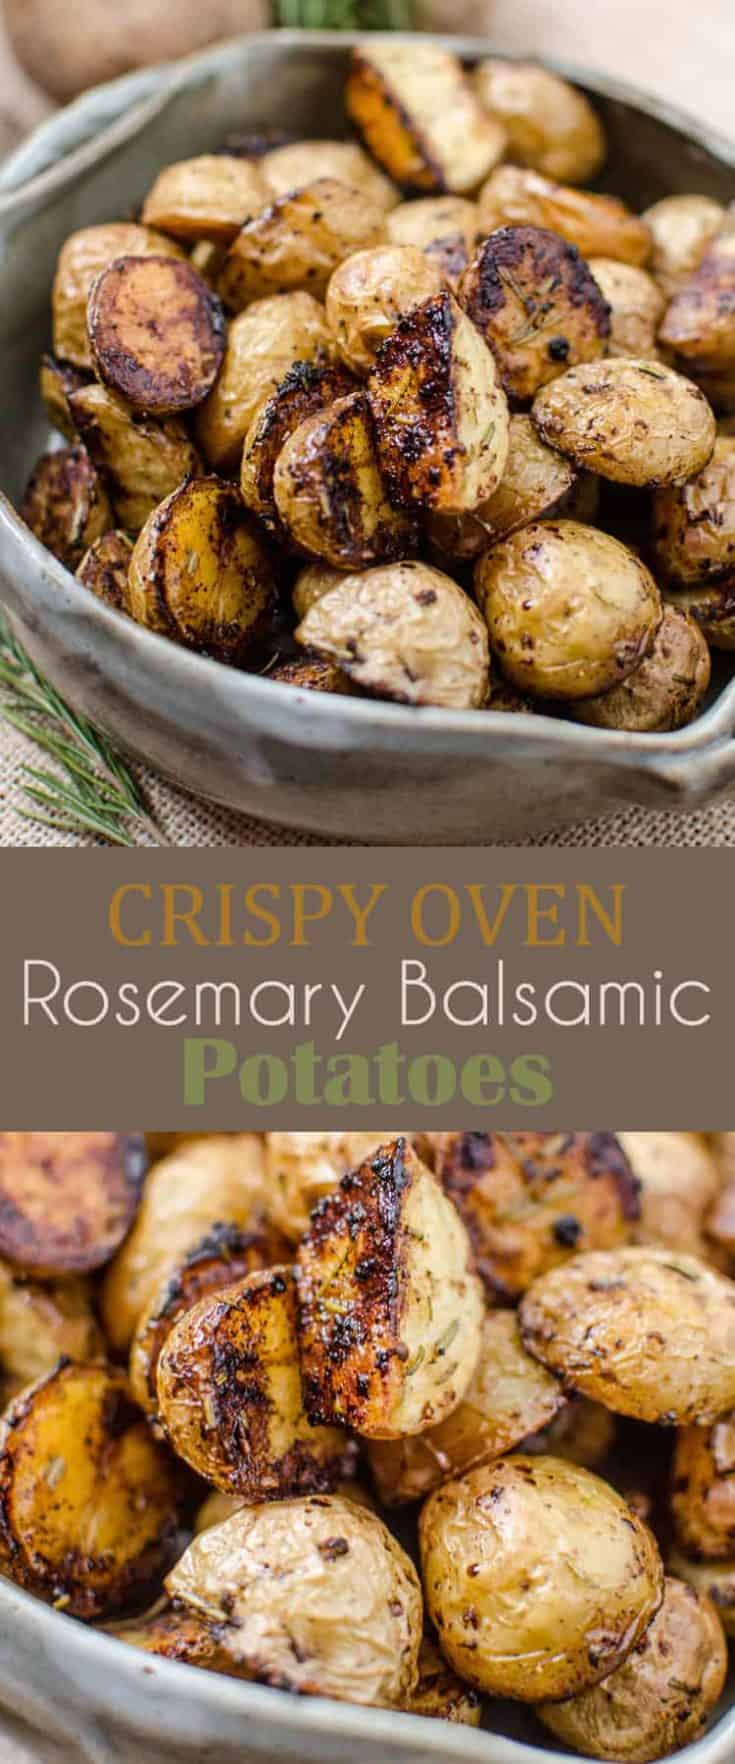 Crispy Oven Rosemary Balsamic Potatoes are slightly sweet from the caramelization on the bottoms with a savoury taste from the spices. A fantastic potato recipe! #potatorecipe #sidedish #roastedpotatoes